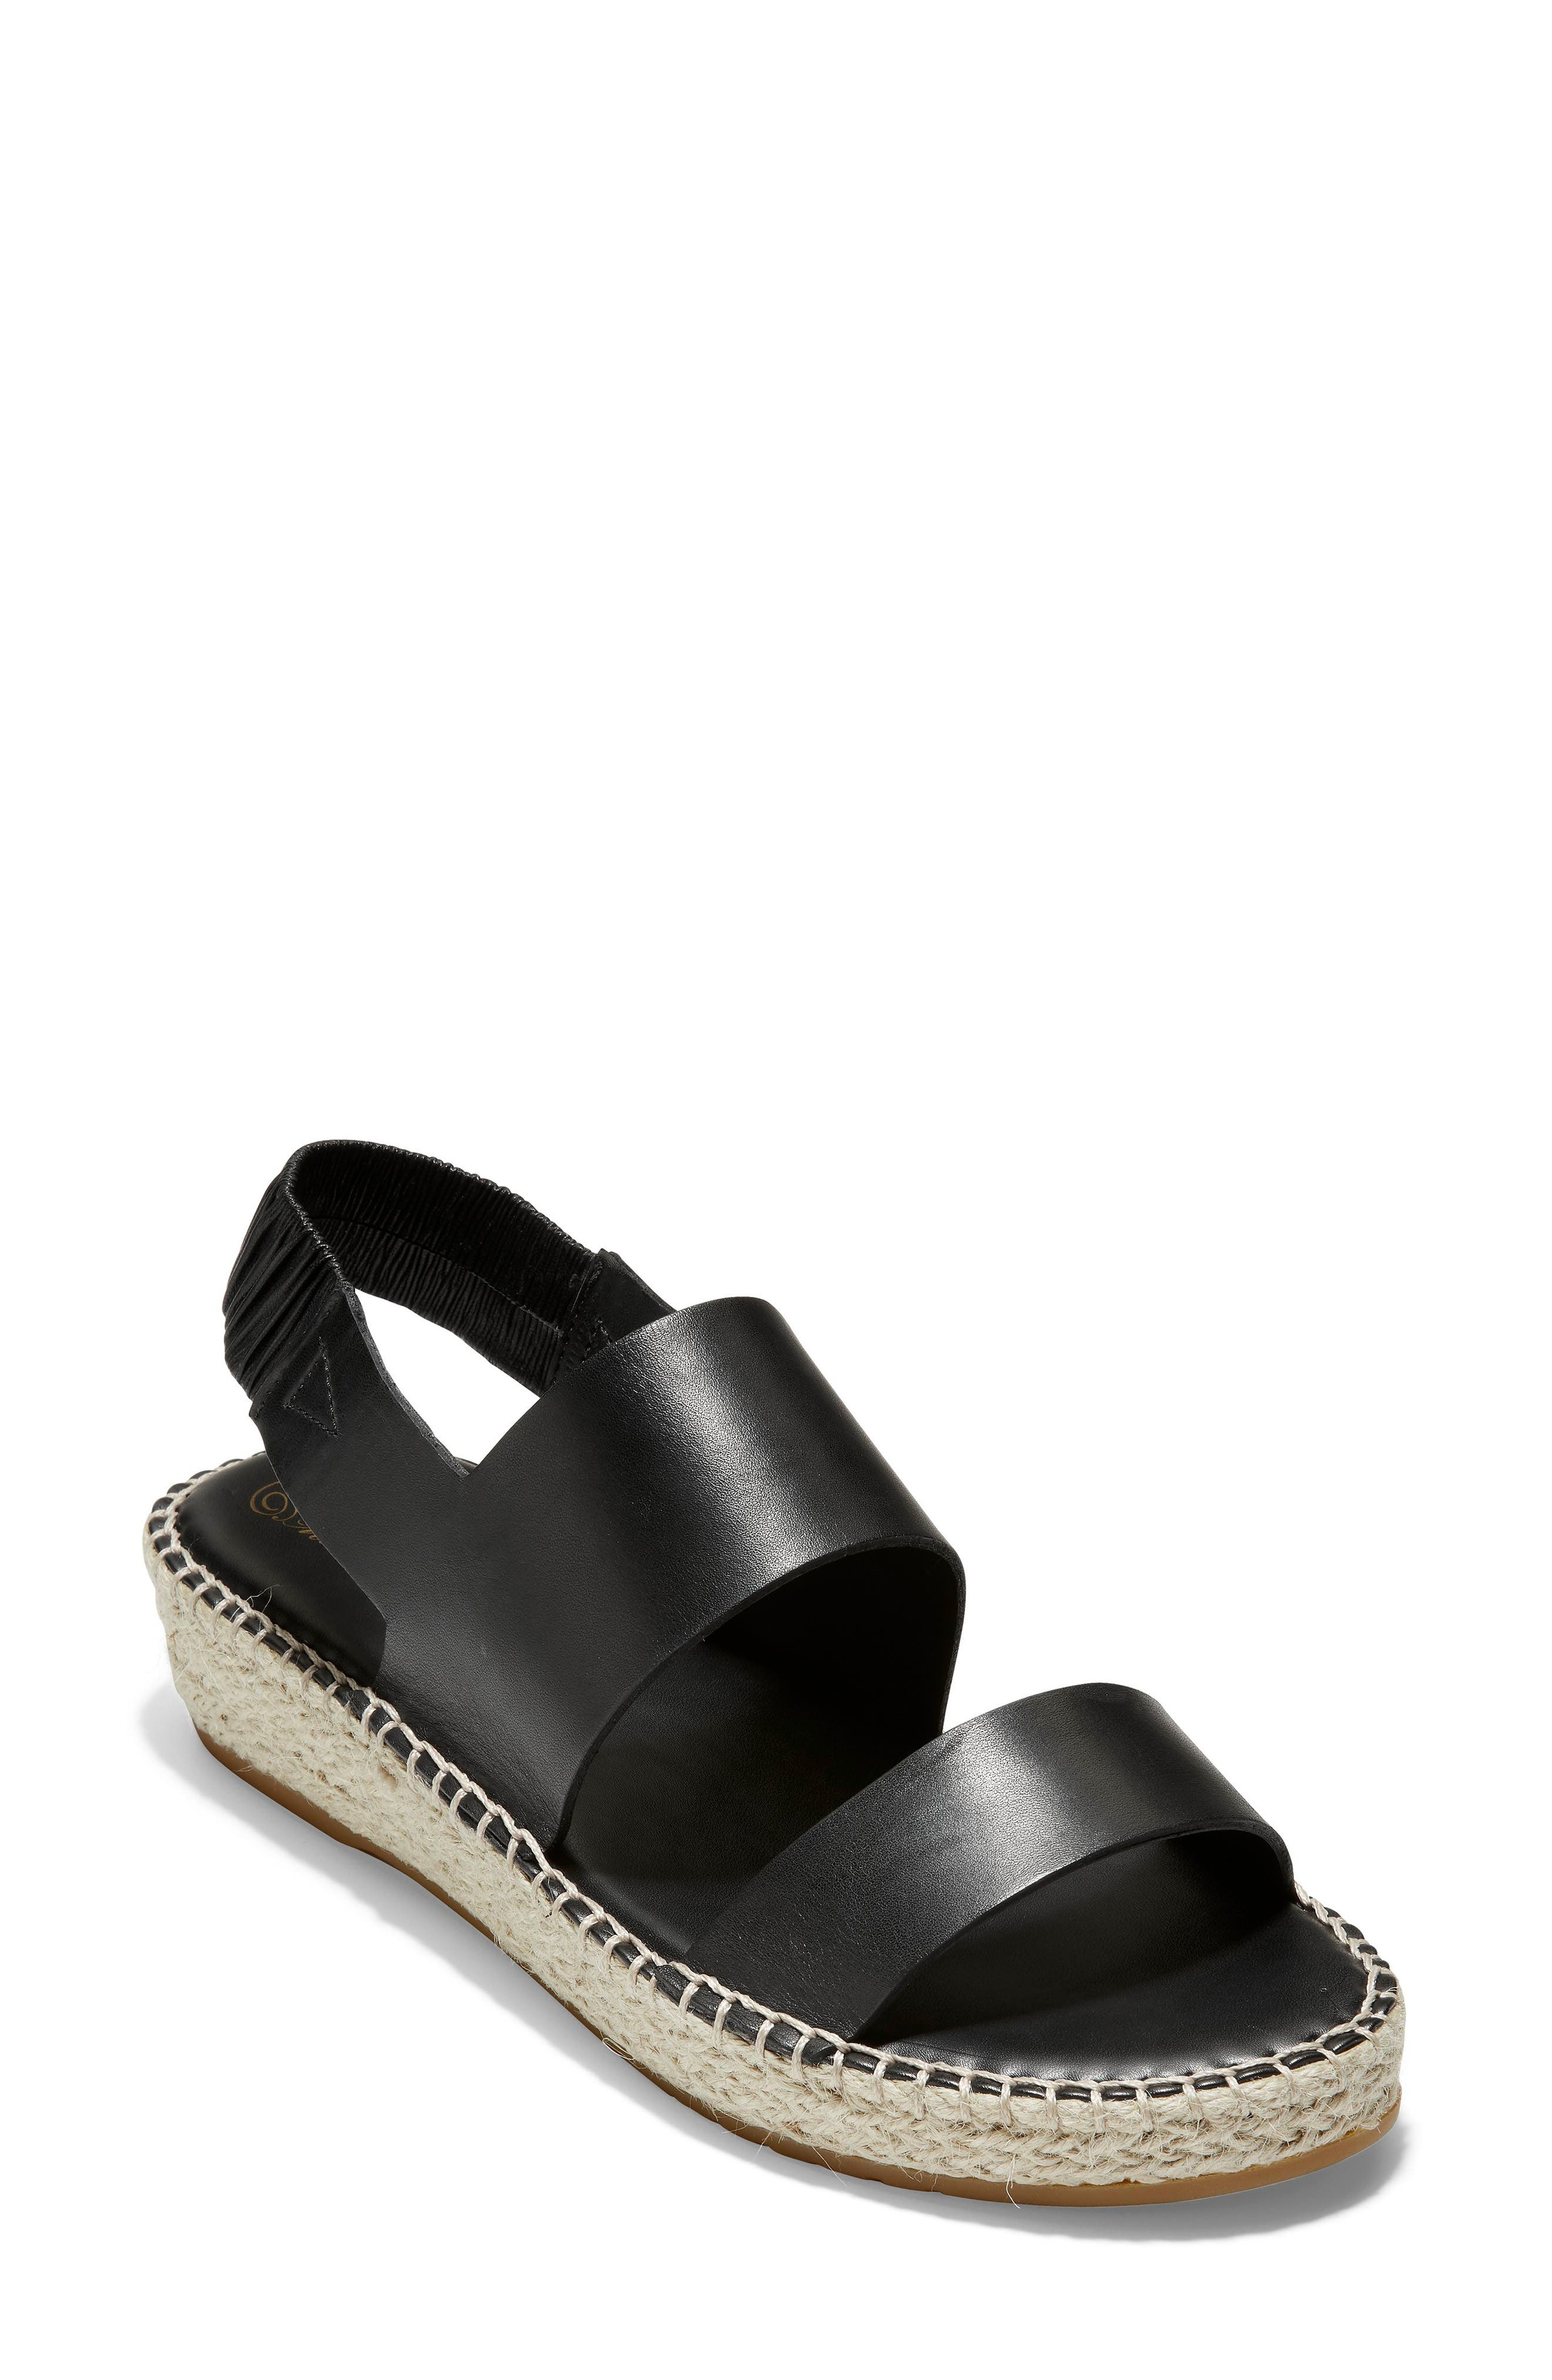 Image of Cole Haan Cloudfeel Espadrille Sandal